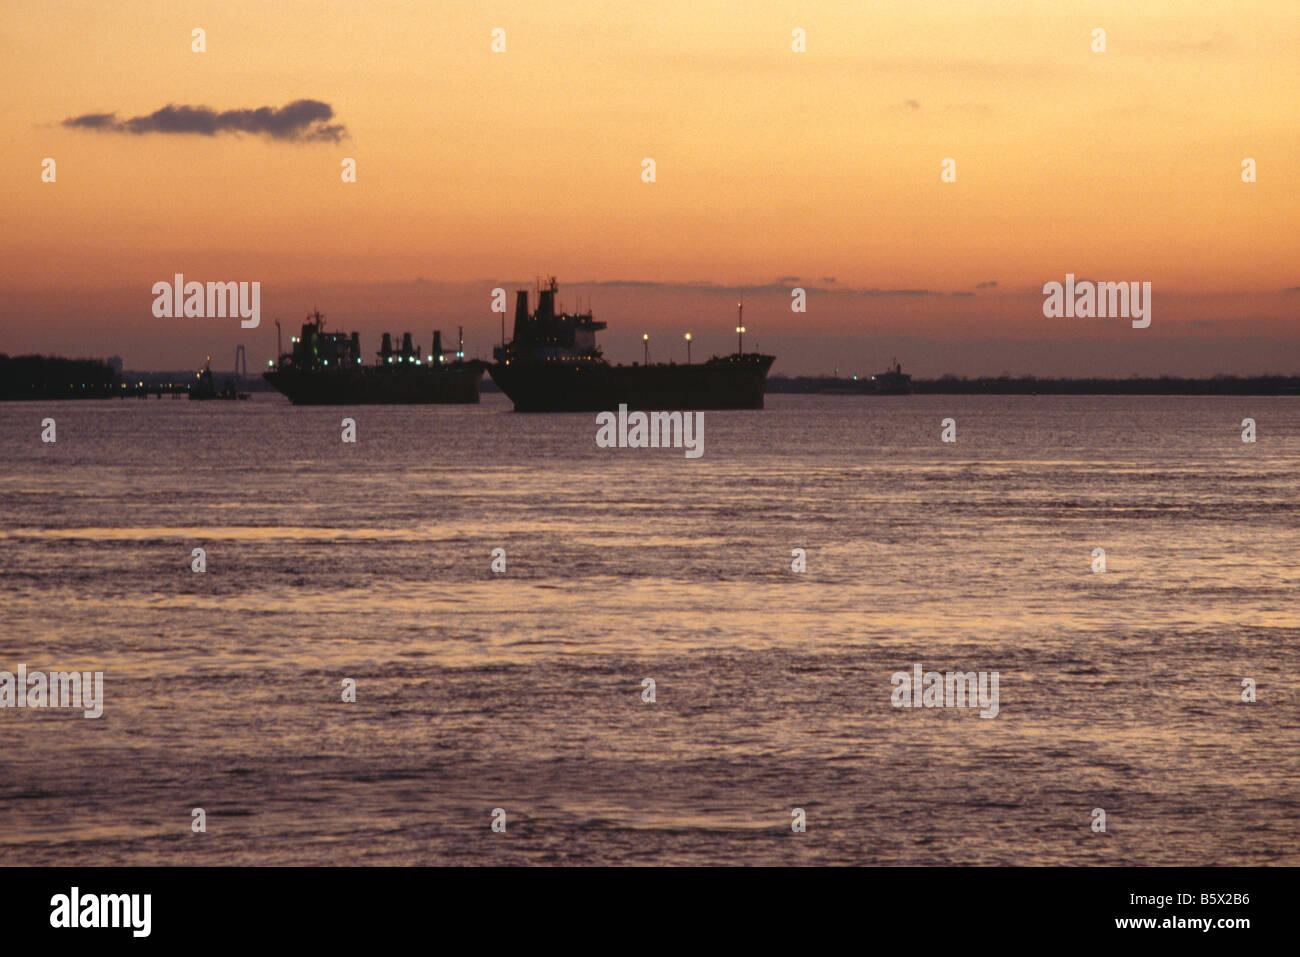 Ships on the Mississippi River near New Orleans Louisiana USA Stock Photo